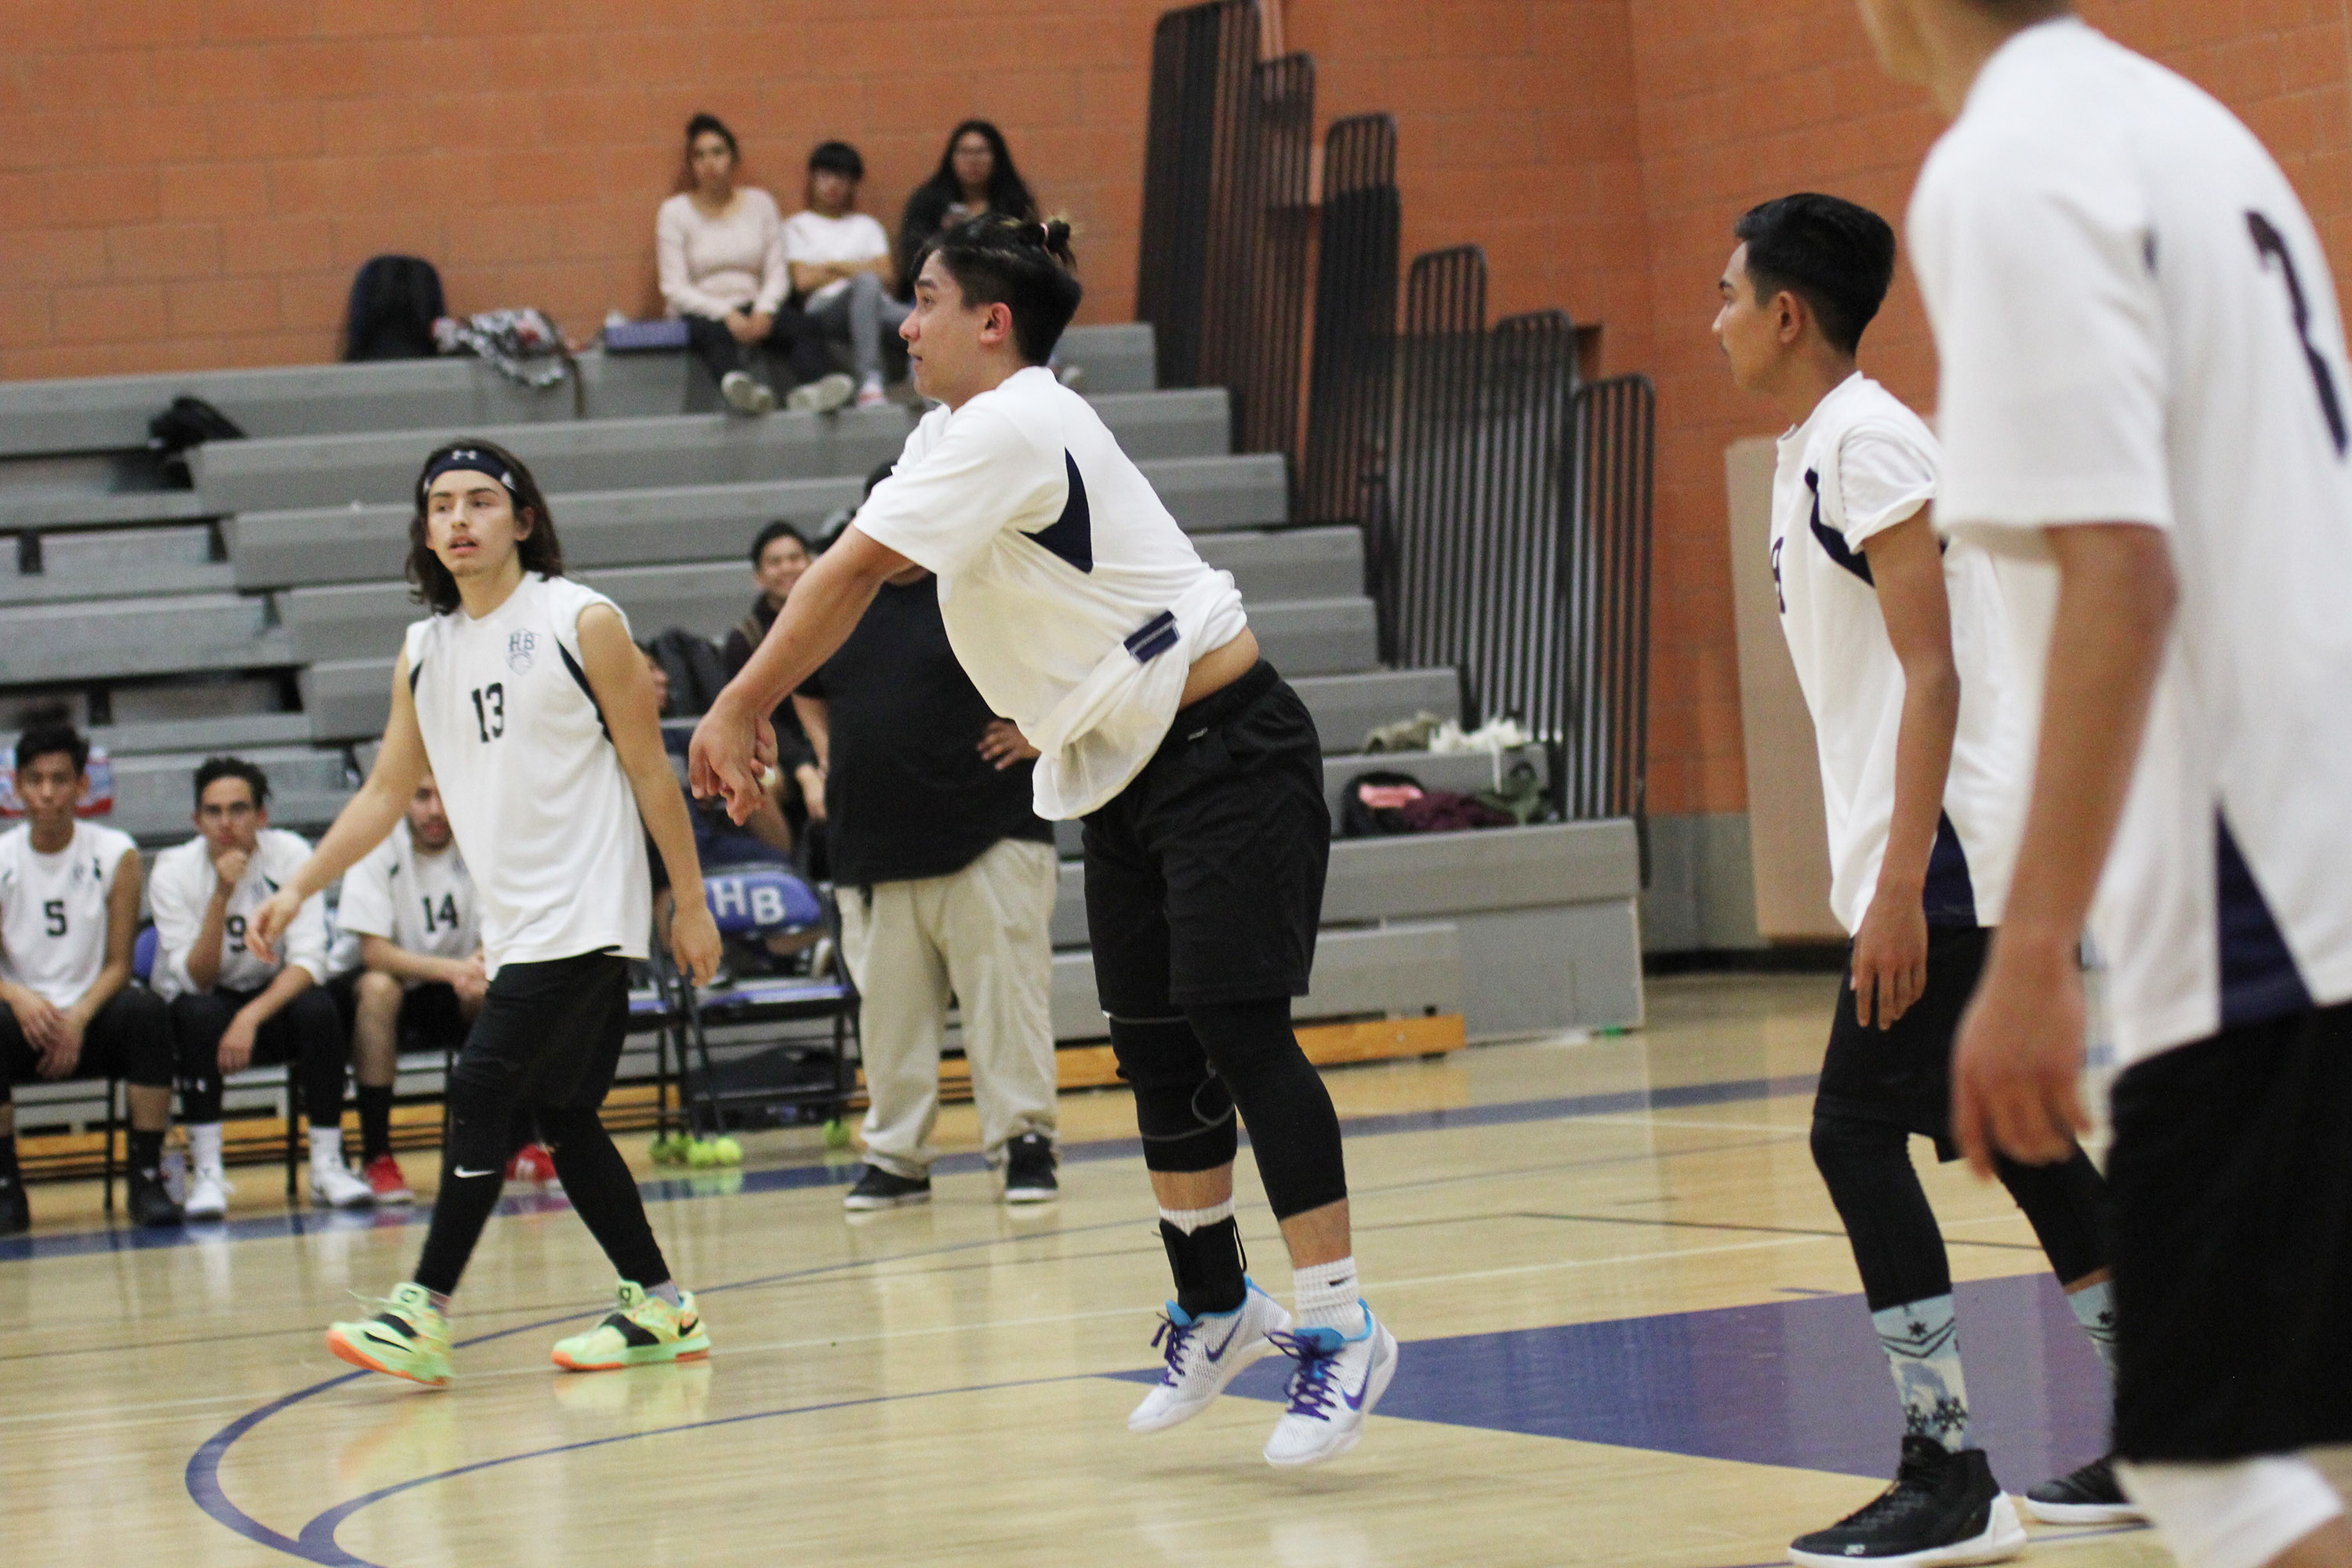 Boys Volleyball vs Contreras